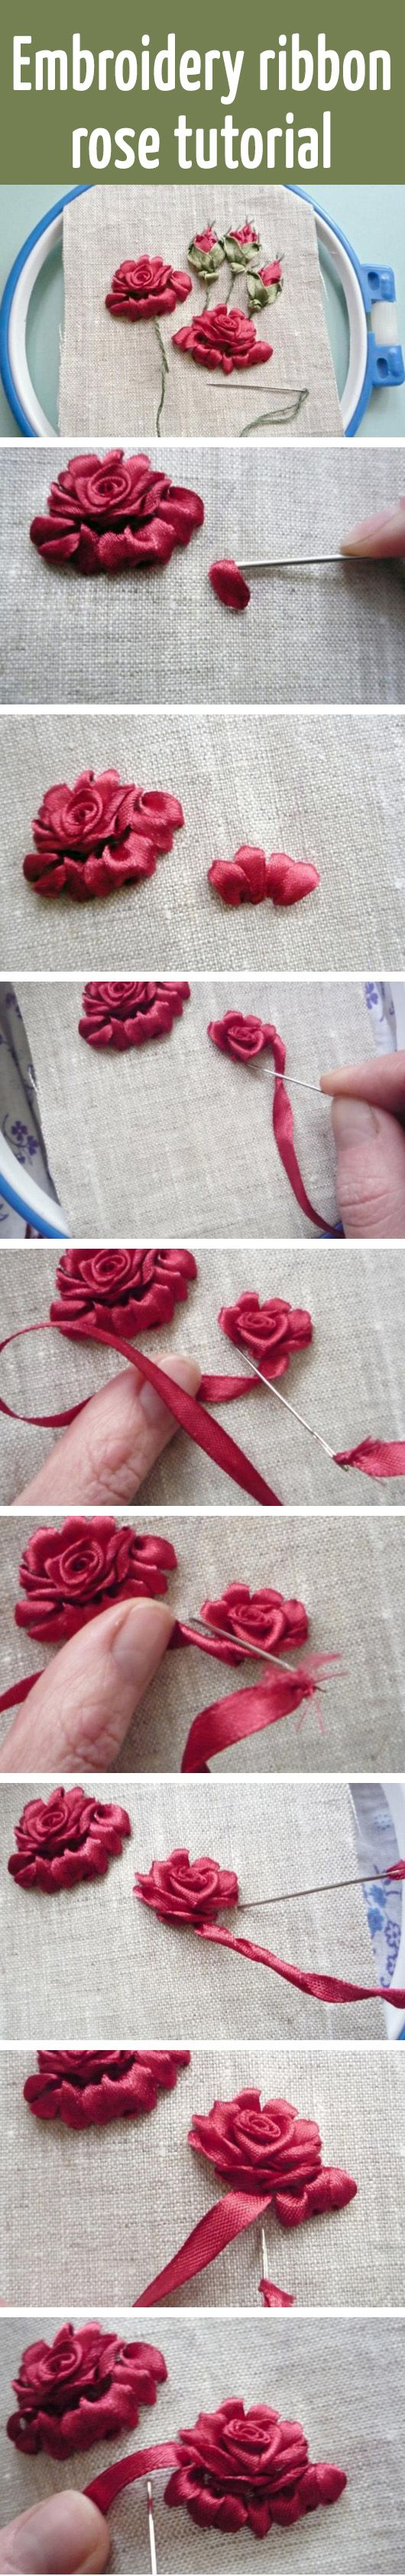 Best ideas about ribbon work on pinterest art